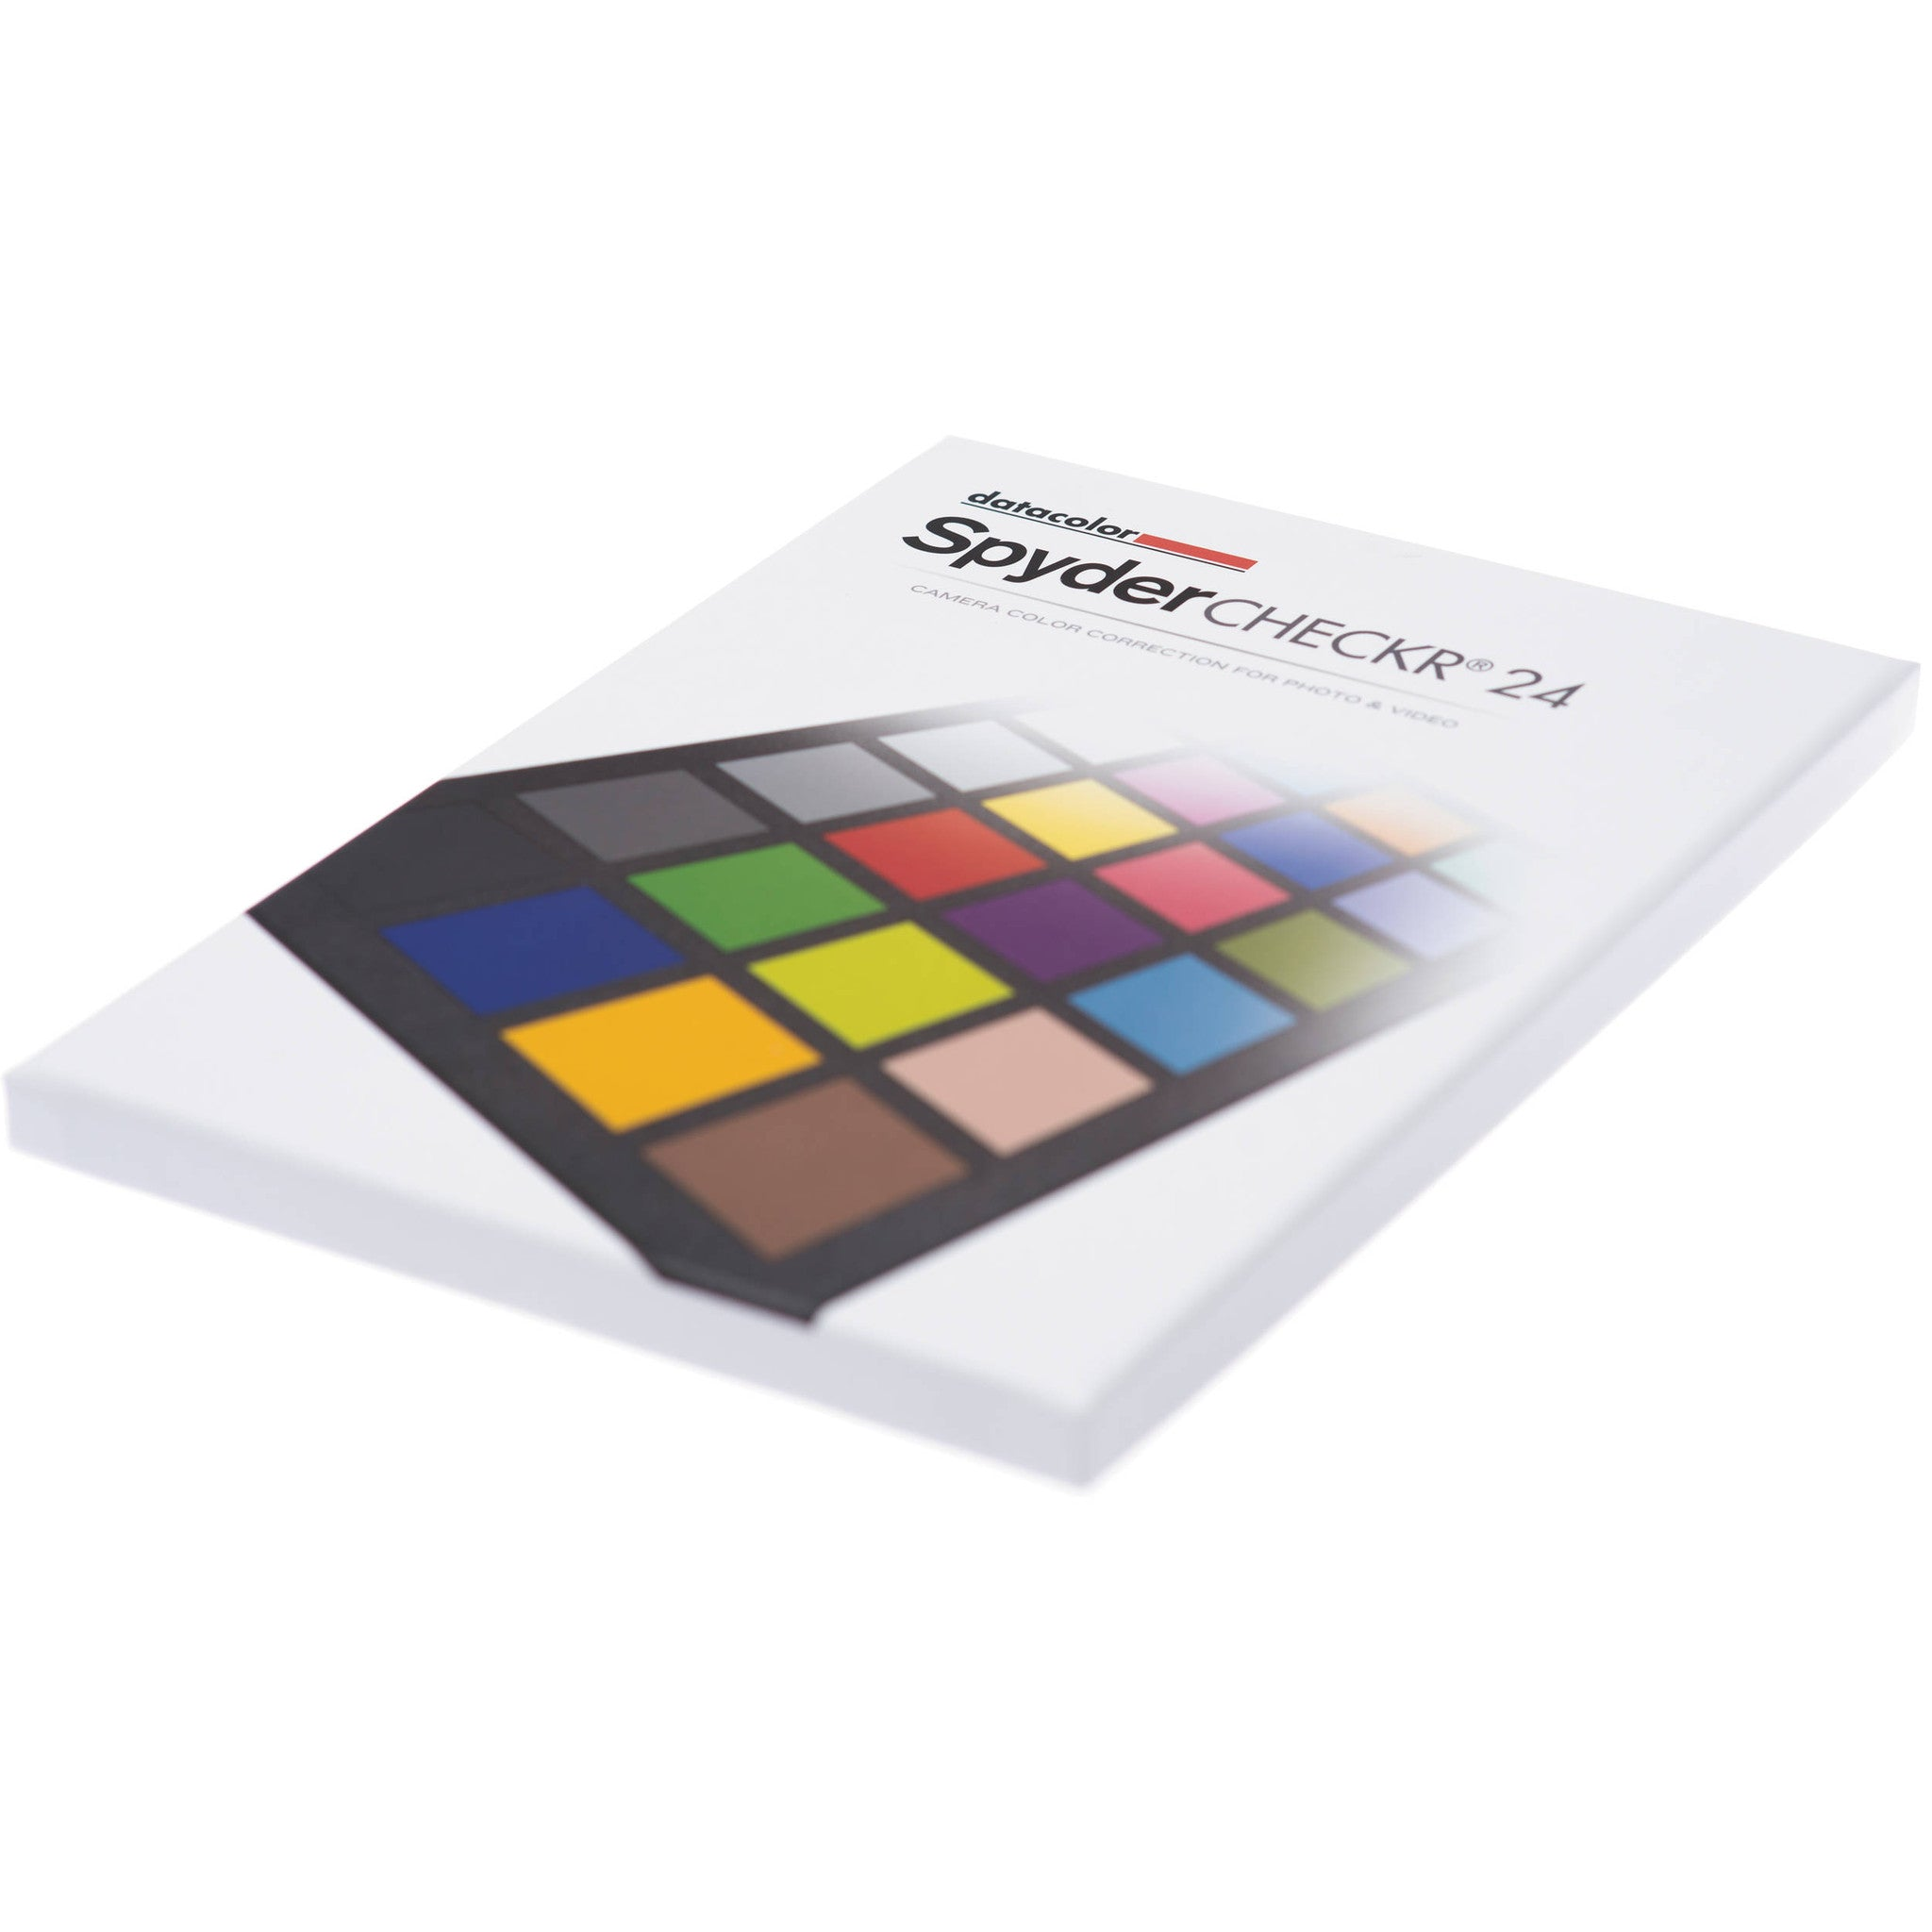 Datacolor 24 Color Patch and Grey Card Camera control photo video White Balance